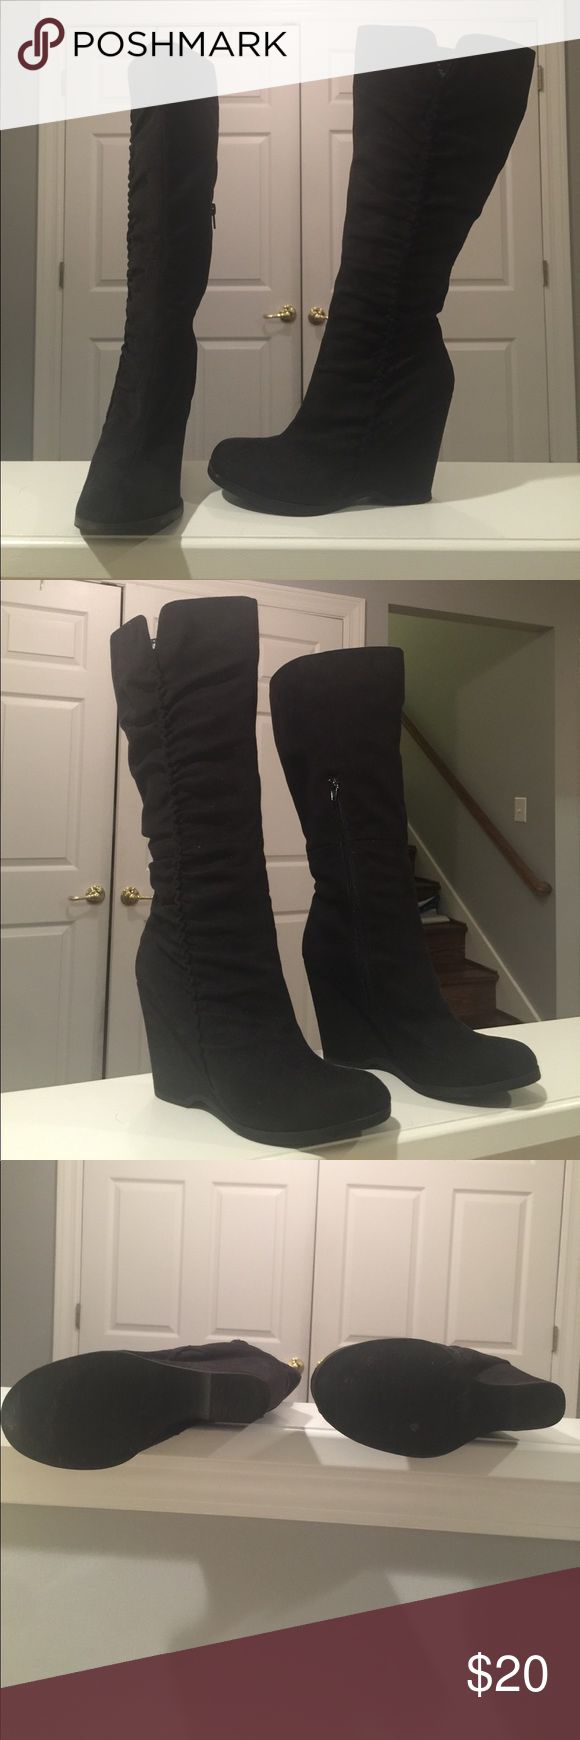 MIA black knee high wedge boot Worn MAYBE 3 times, these boots zip up the side and come right up beneath the knee. There are MINOR scuds on the back of the heel of you look at the attached photos but they are hardly noticeable. :) MIA Shoes Wedges